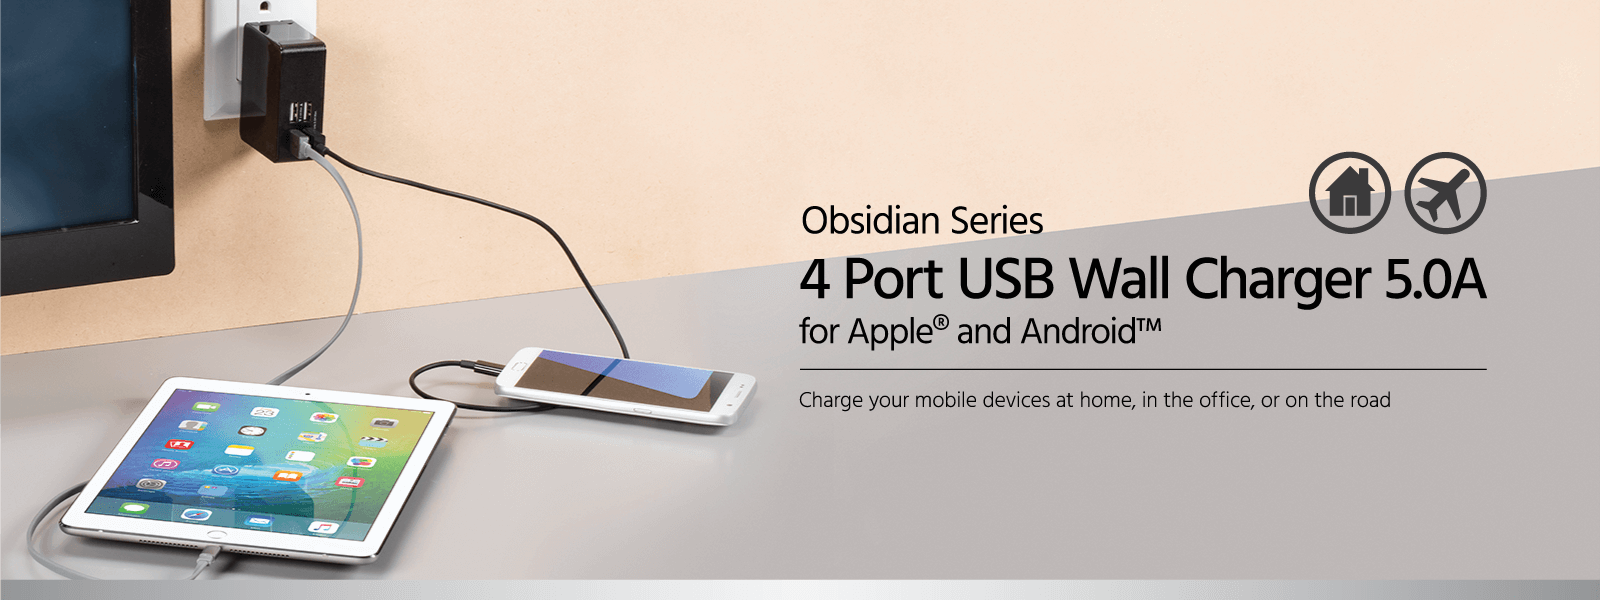 4-Port USB Wall Charger 5.0A